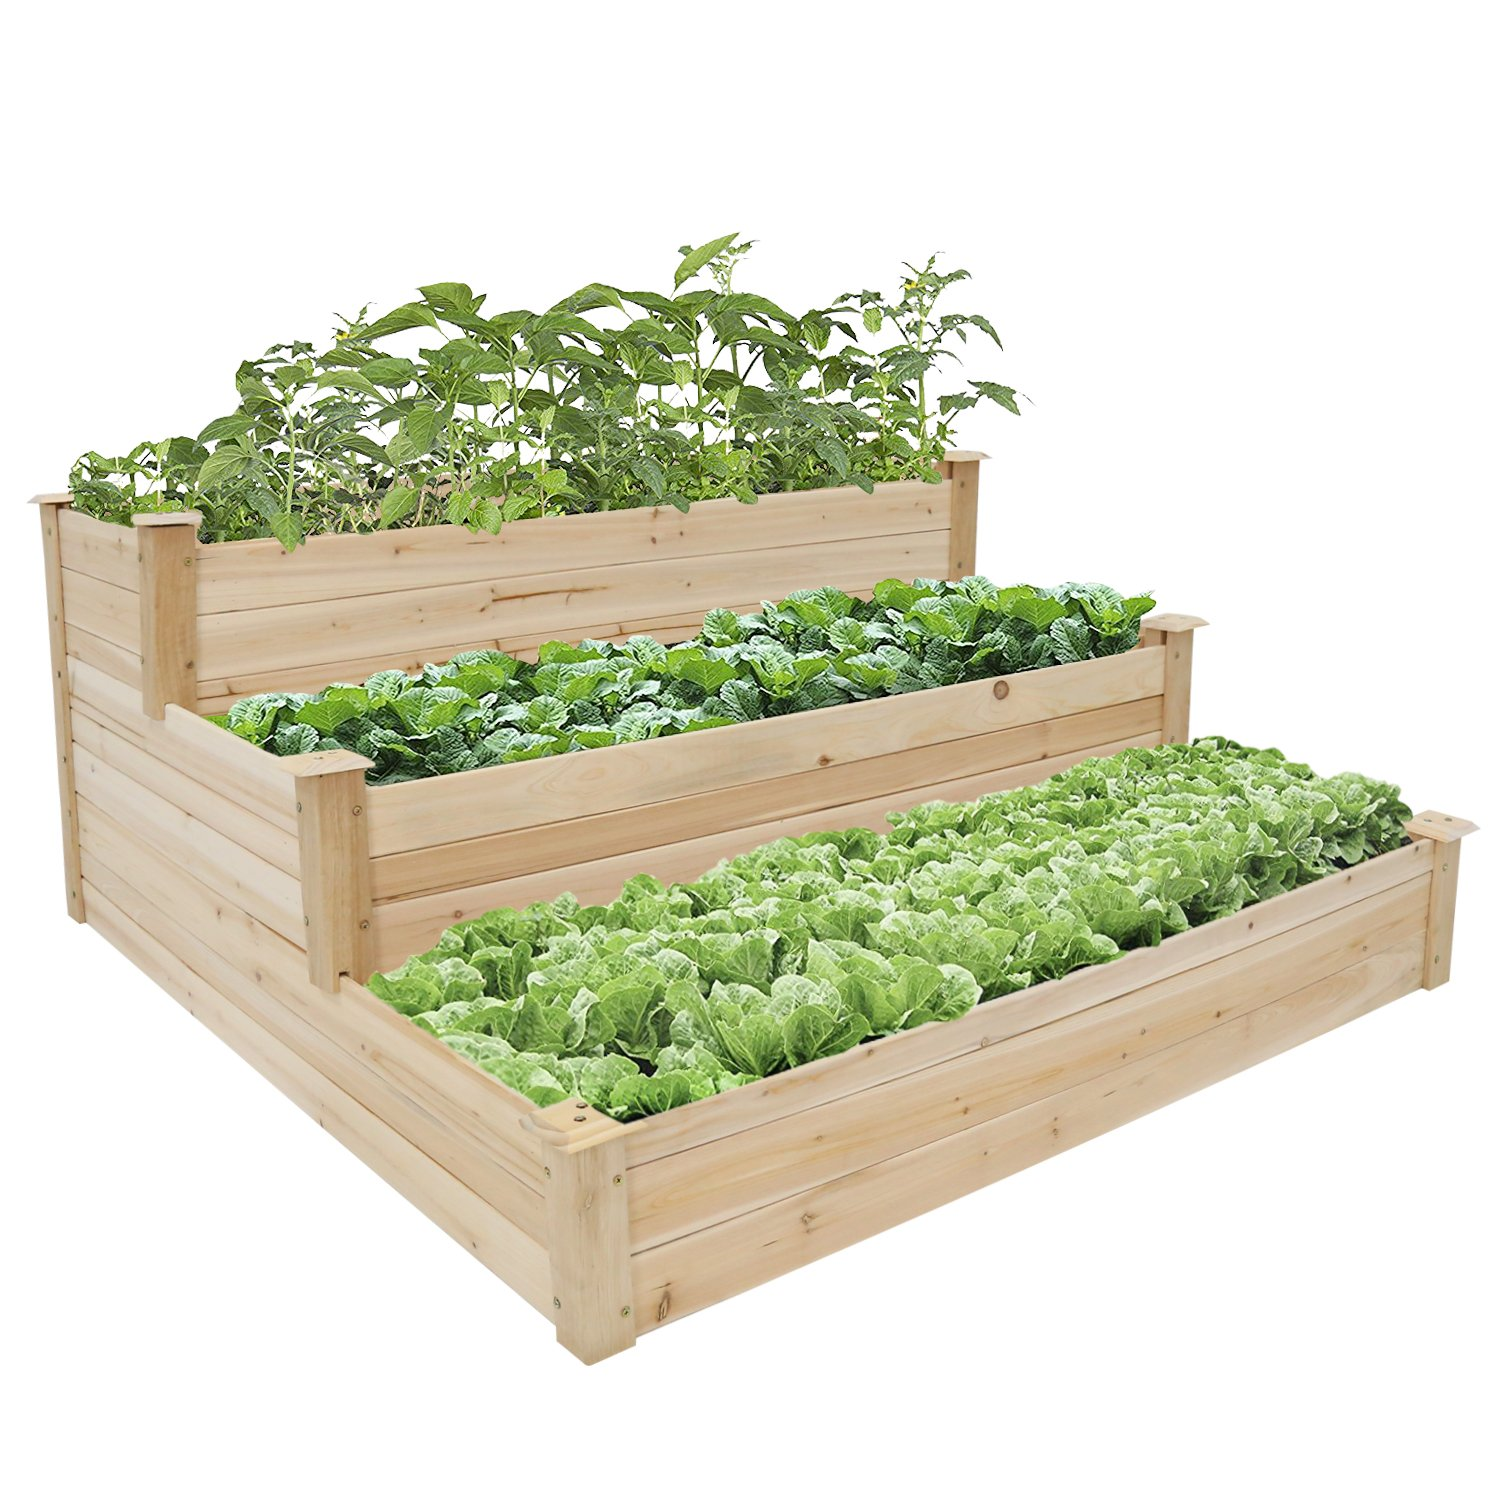 Peachtree Press Inc 3-Tier Wooden Raised Garden Bed Elevated Planter Kit Grow Flower Vegetables